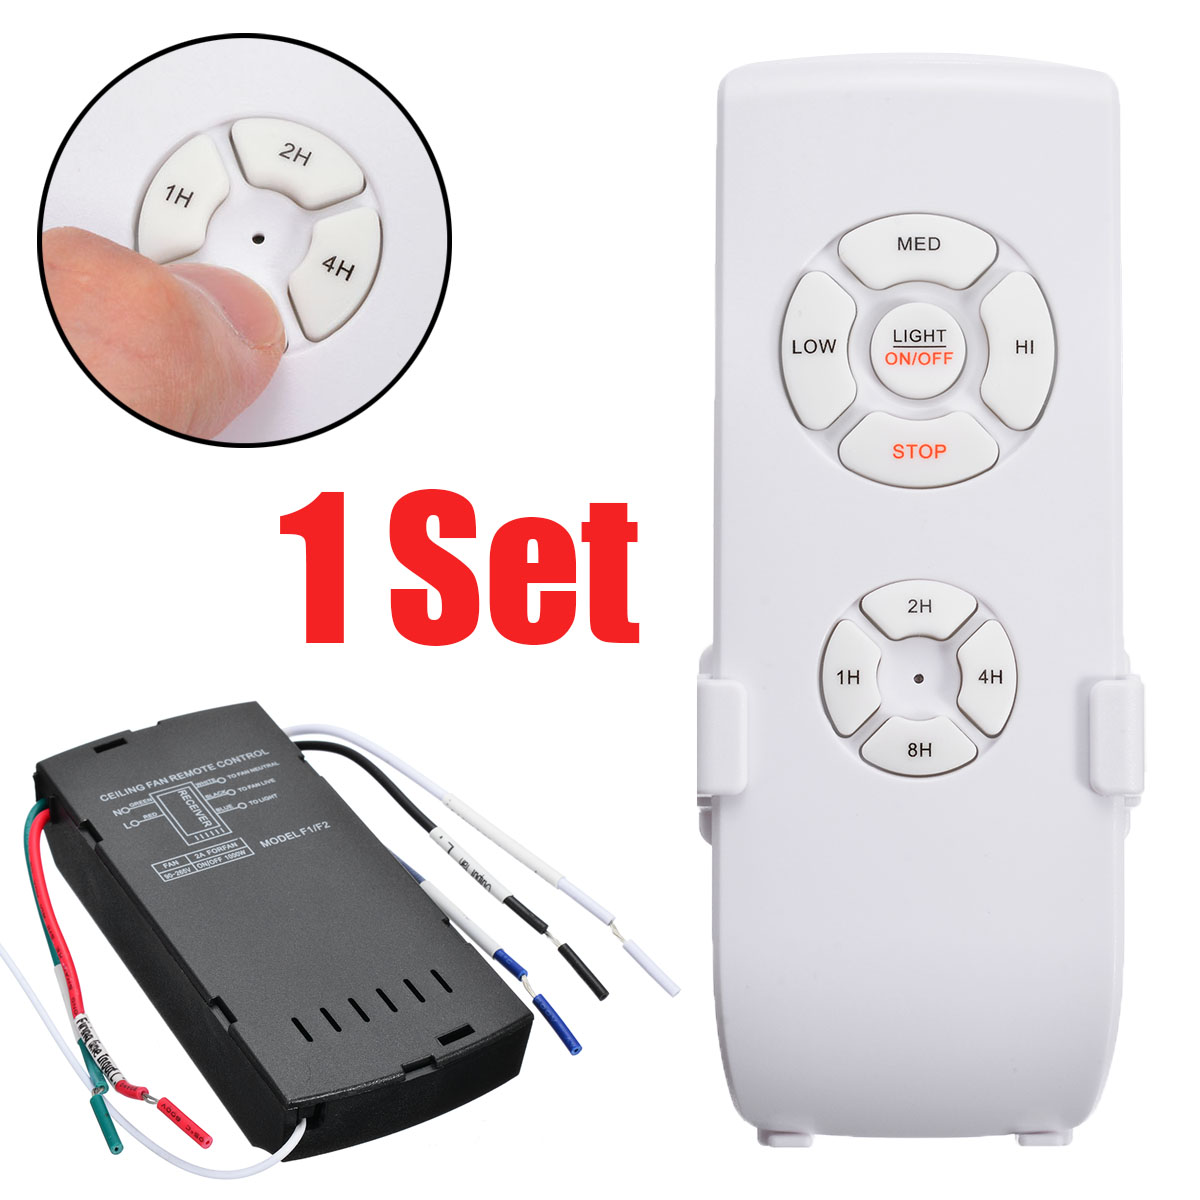 Universal Ceiling Fan Lamp Remote Control Kit 90-265V Timing Control Switch Adjusted Wind Speed Transmitter Receiver